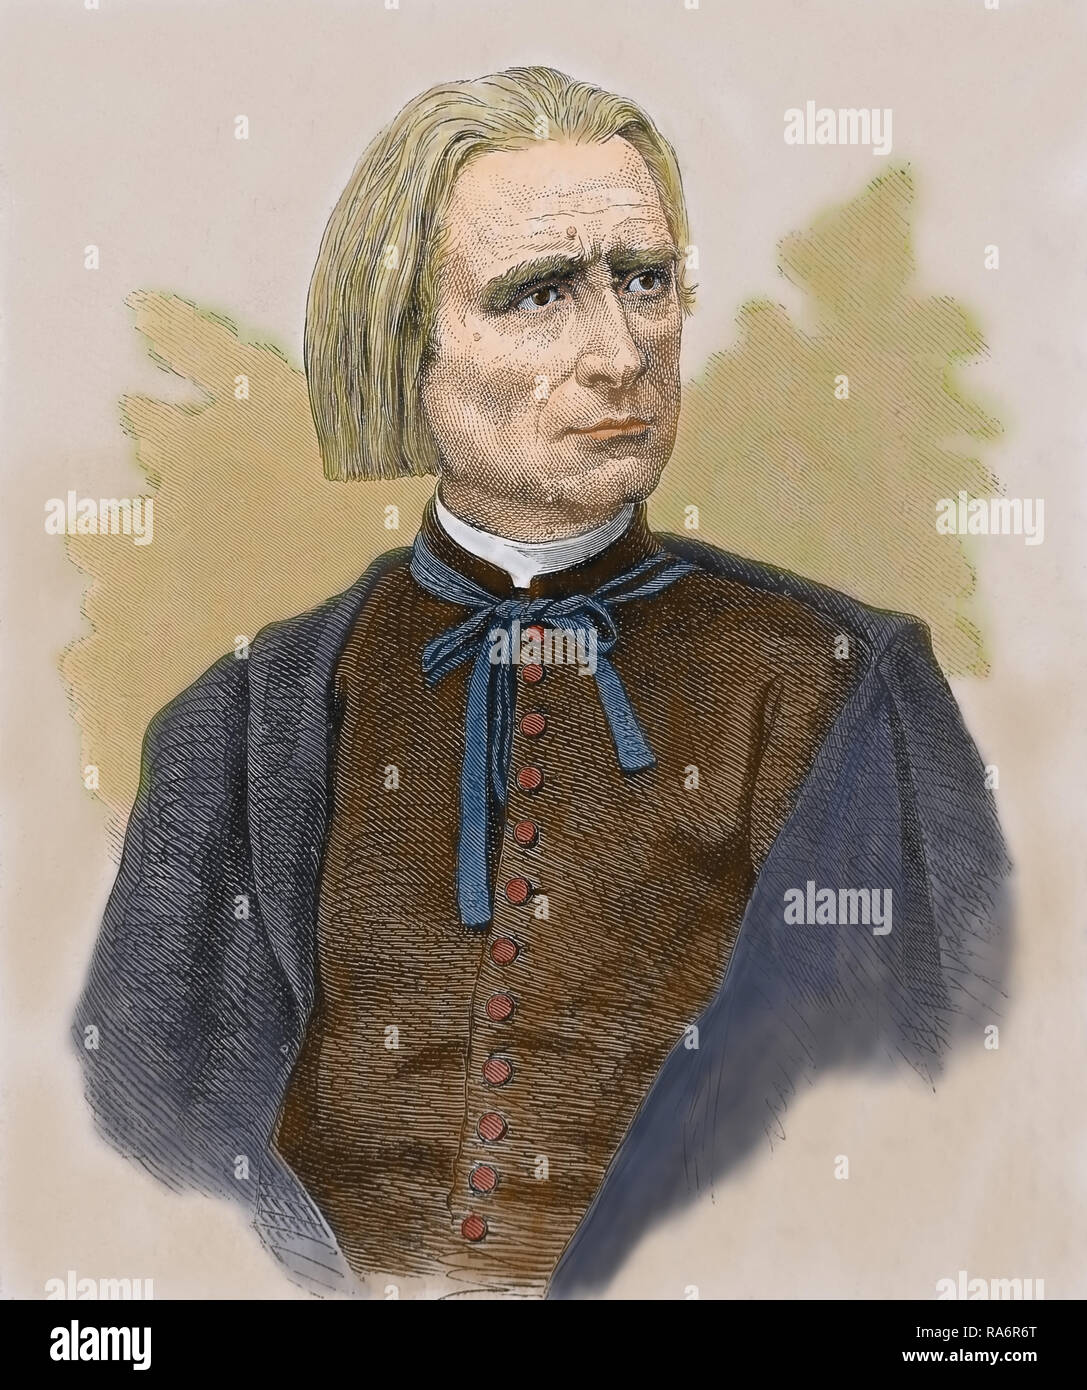 Franz Liszt (1811-1886) Musician, piano man. Prolific Hungarian composer and author. Engraving 19th. century. Later colouration. Stock Photo